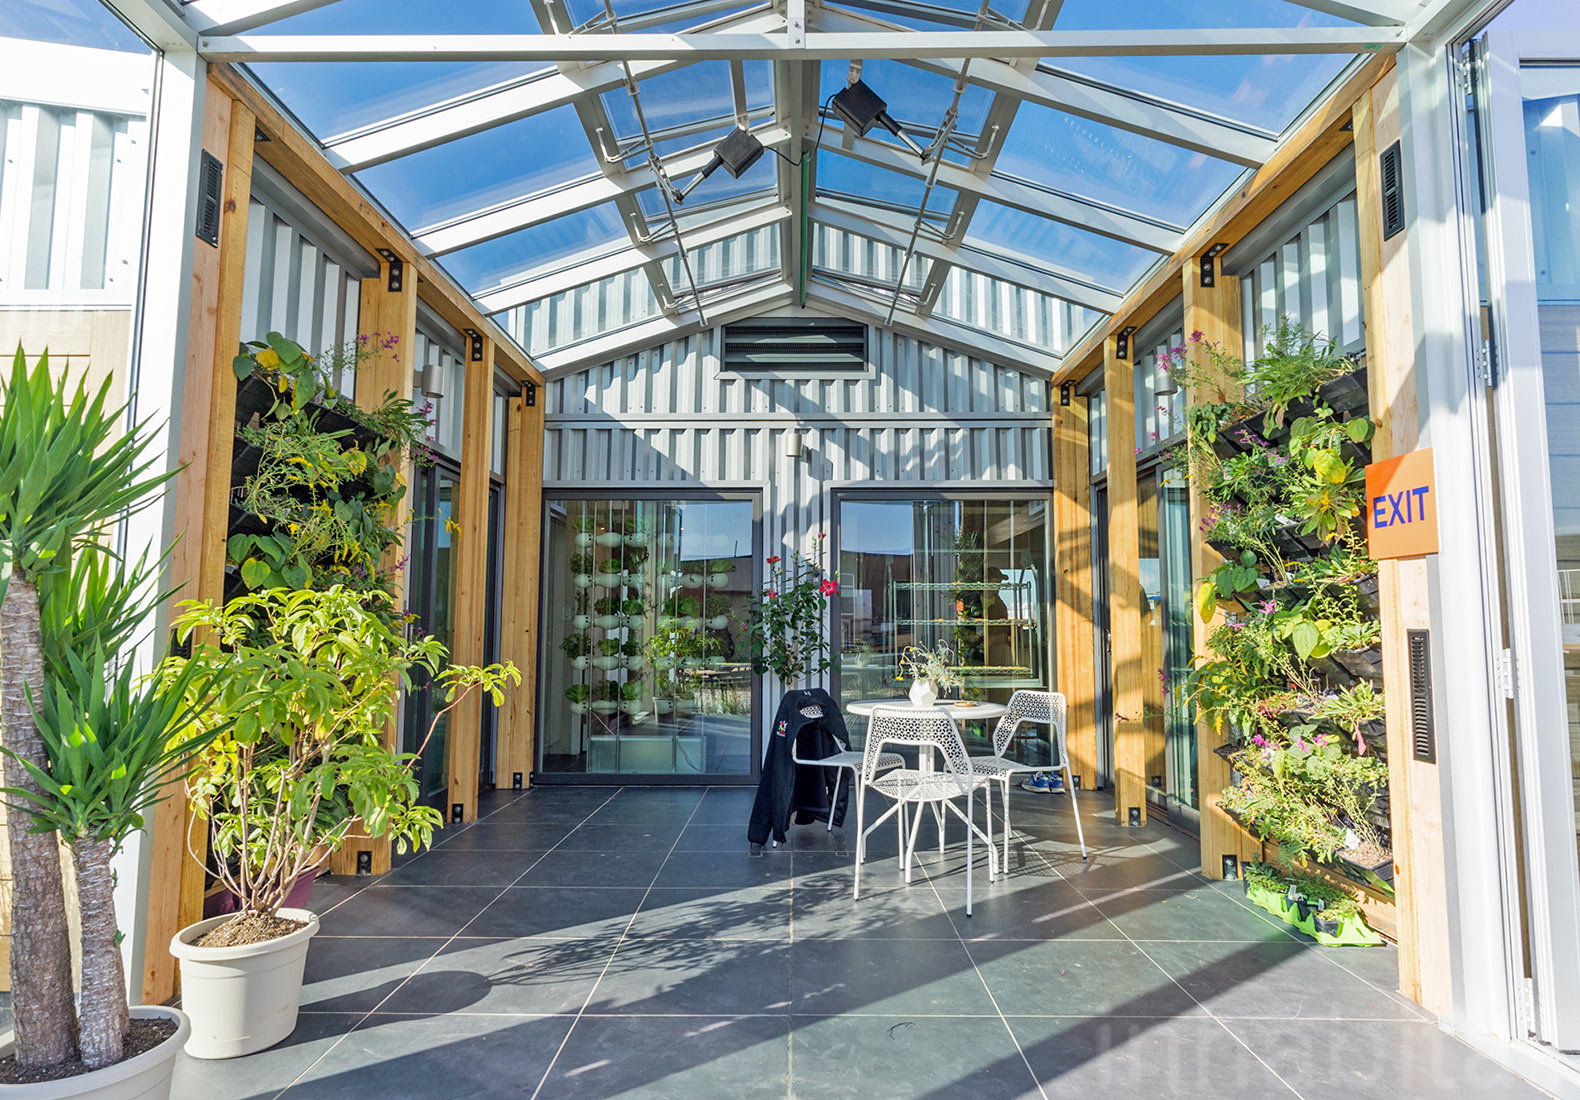 11 Solar-powered homes that show the future of architecture